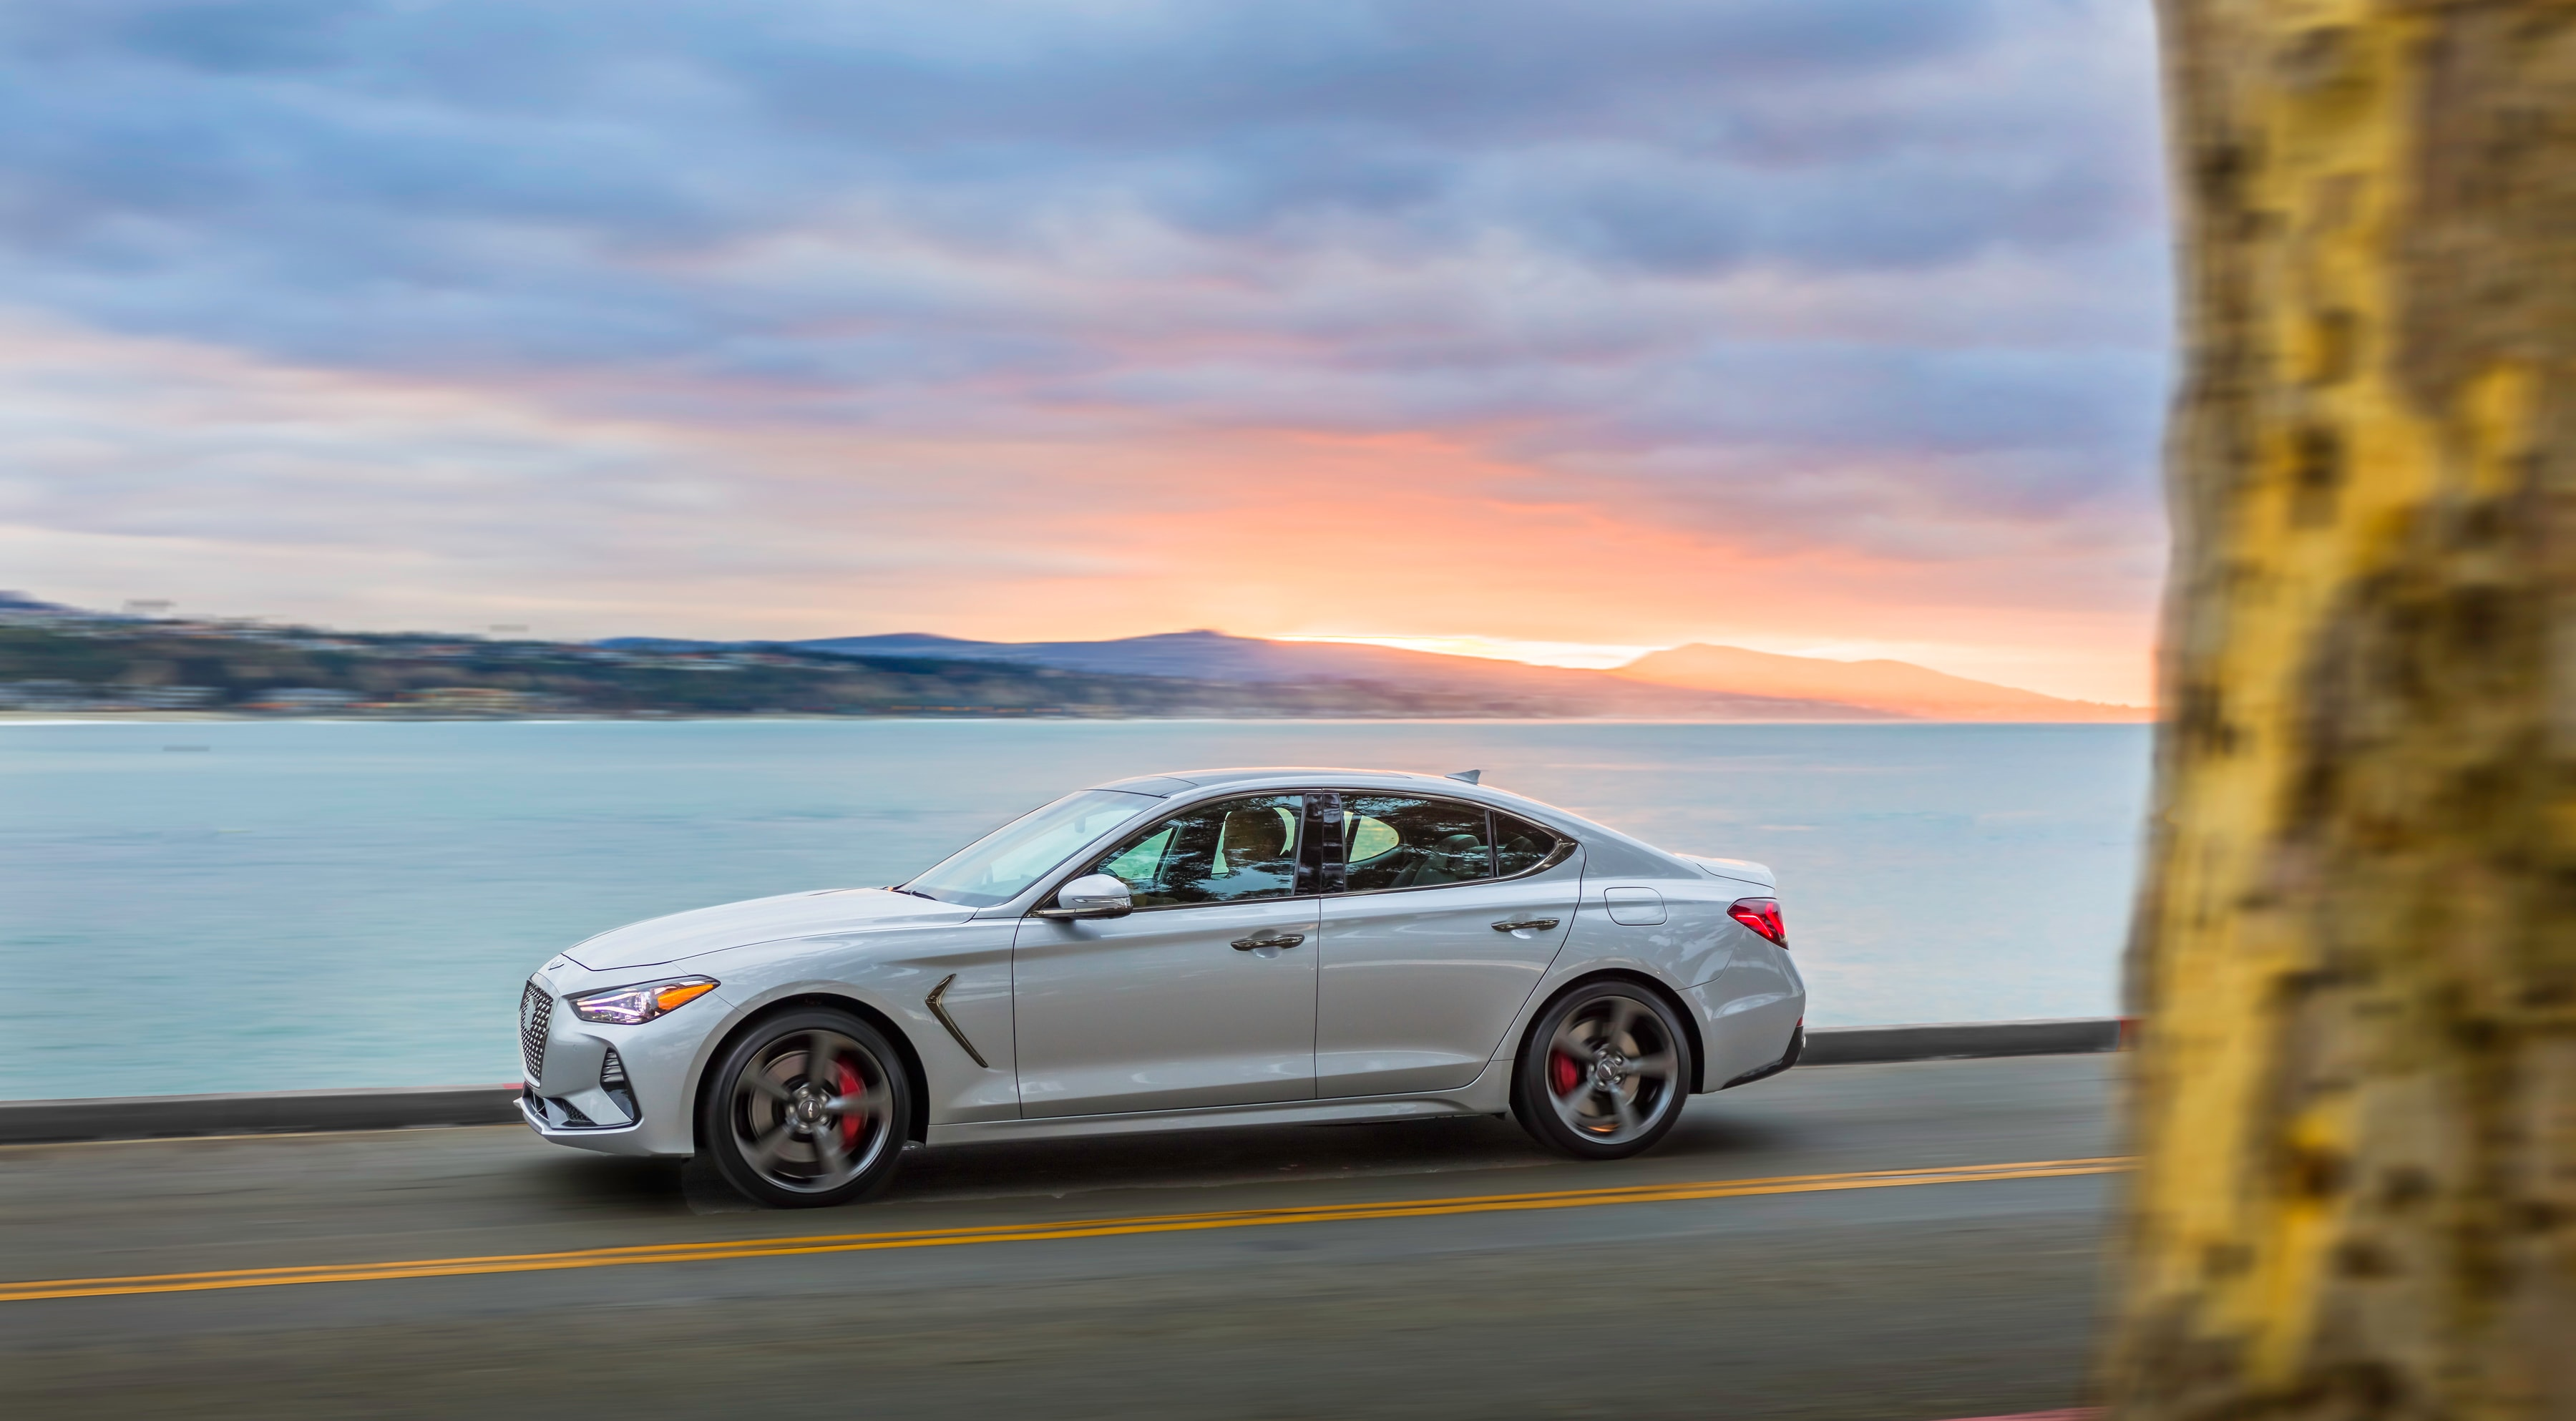 Genesis G70 Is The 2019 Motortrend Car Of The Year Autoinfluence